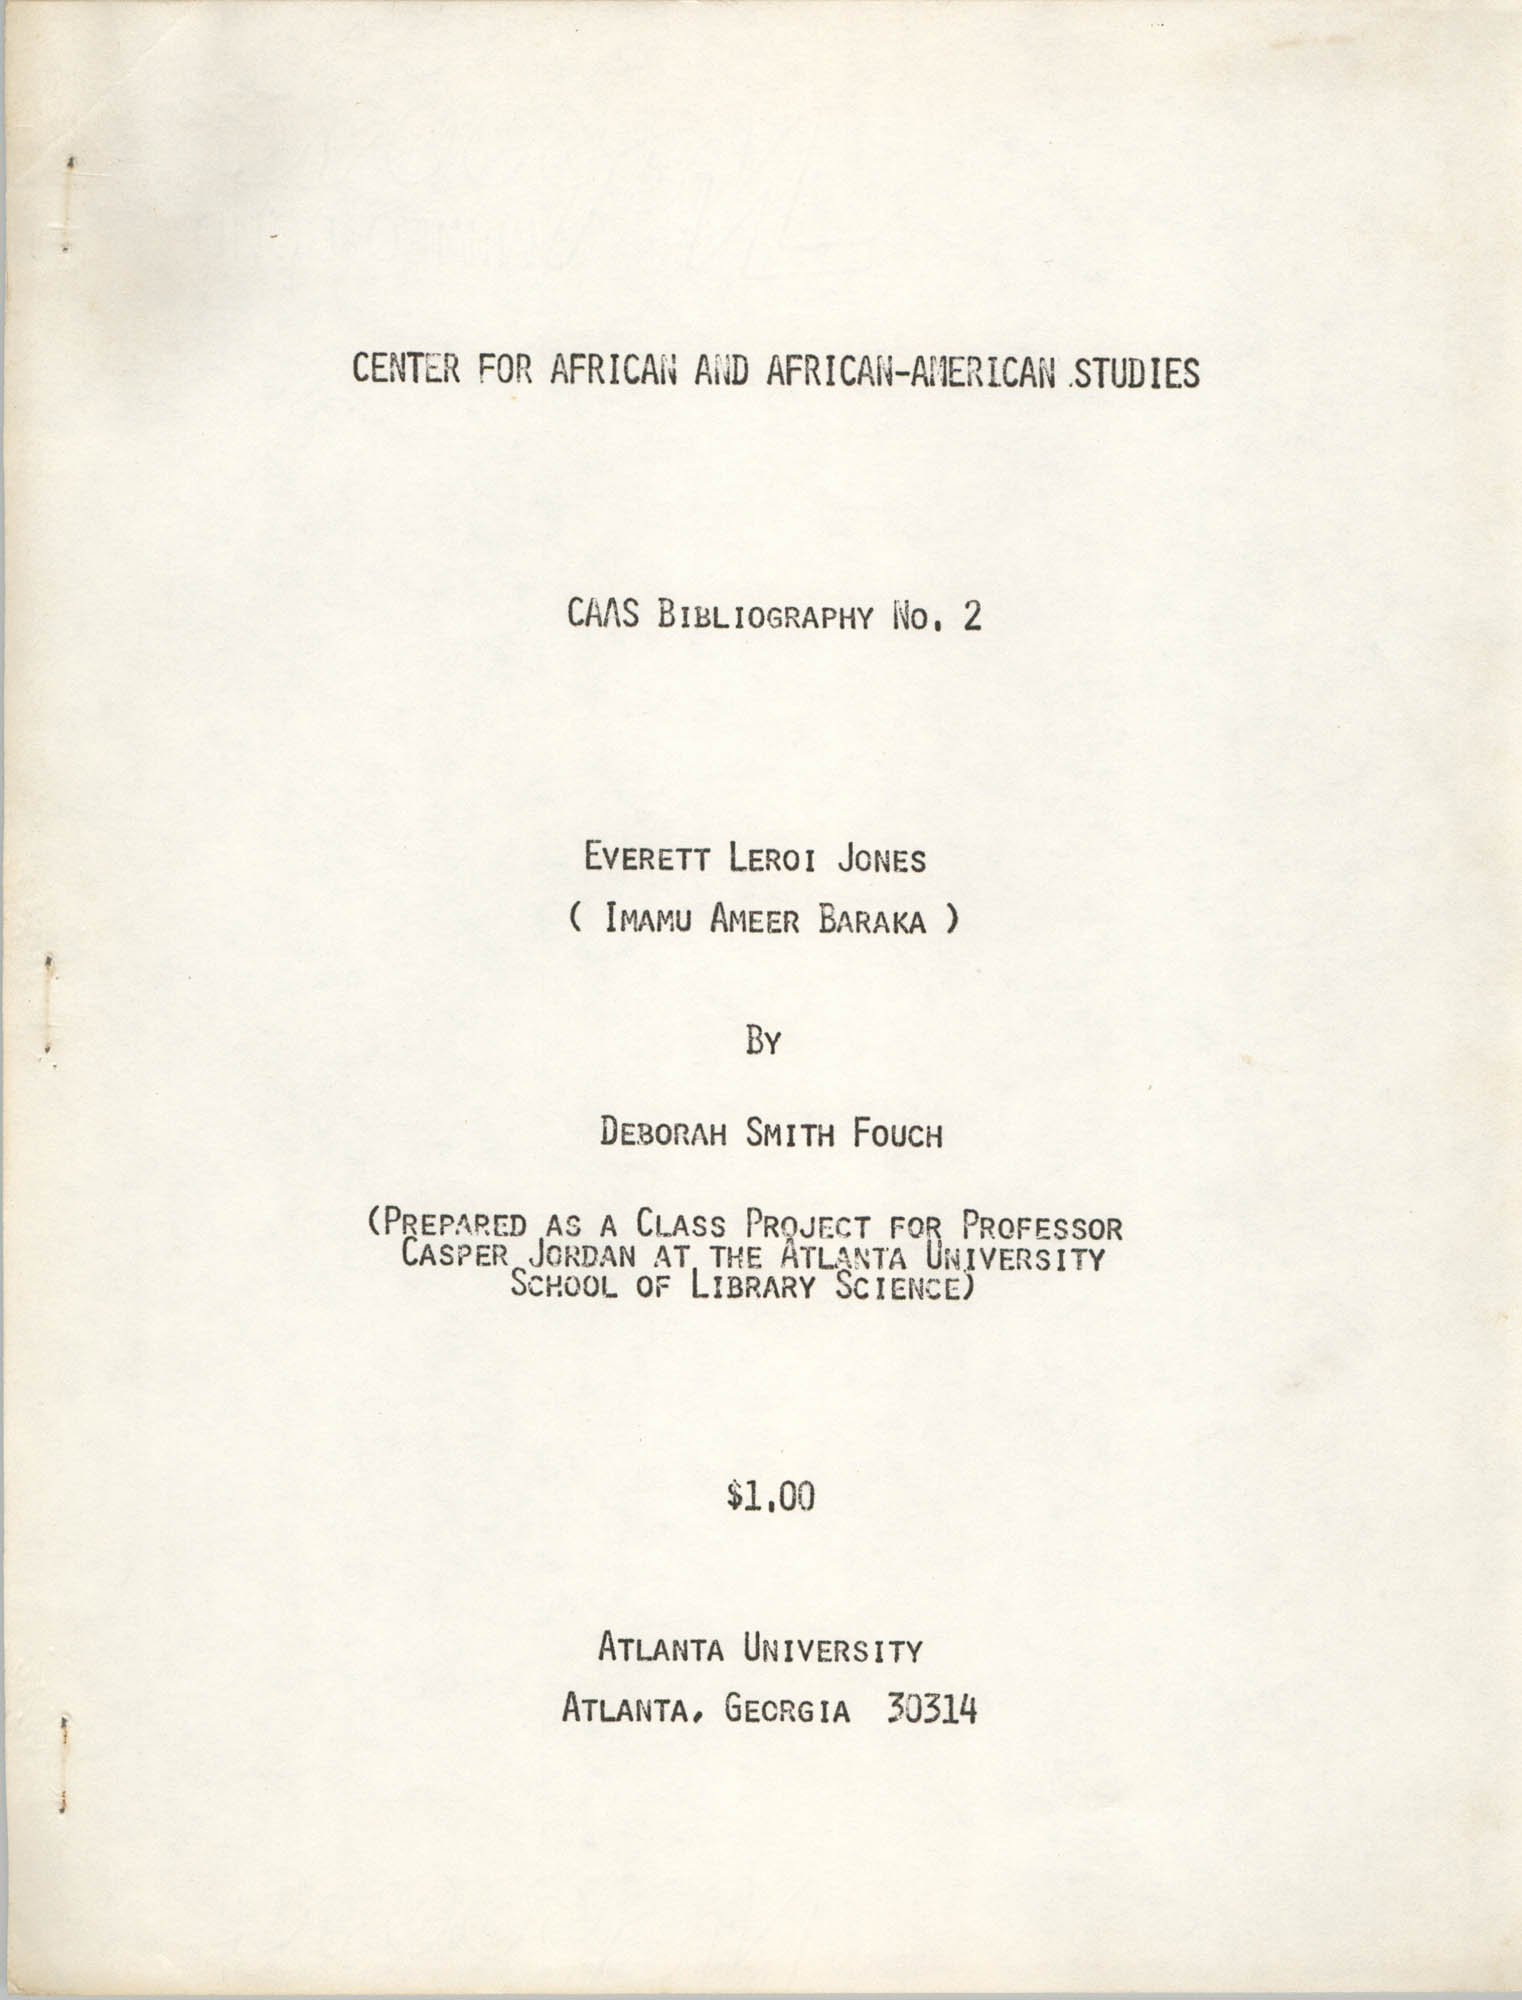 Center for African and African-American Studies Bibliography No. 2, Cover Page